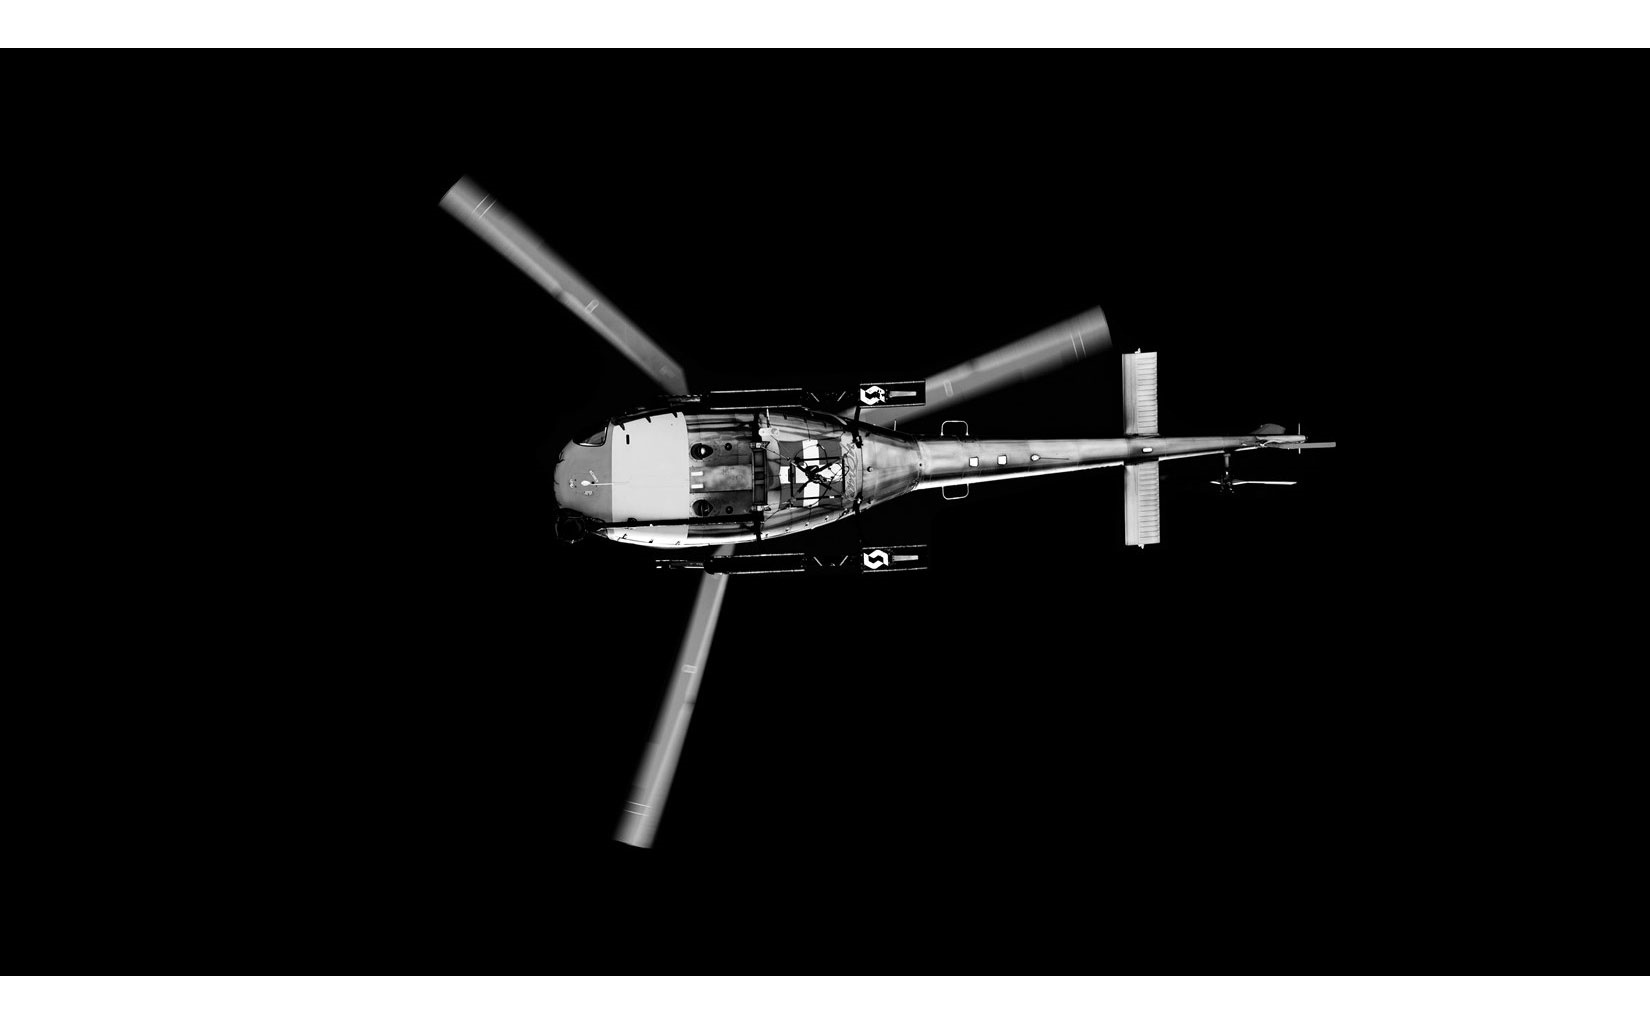 Black and white helicopter from below, showing wings in rotation